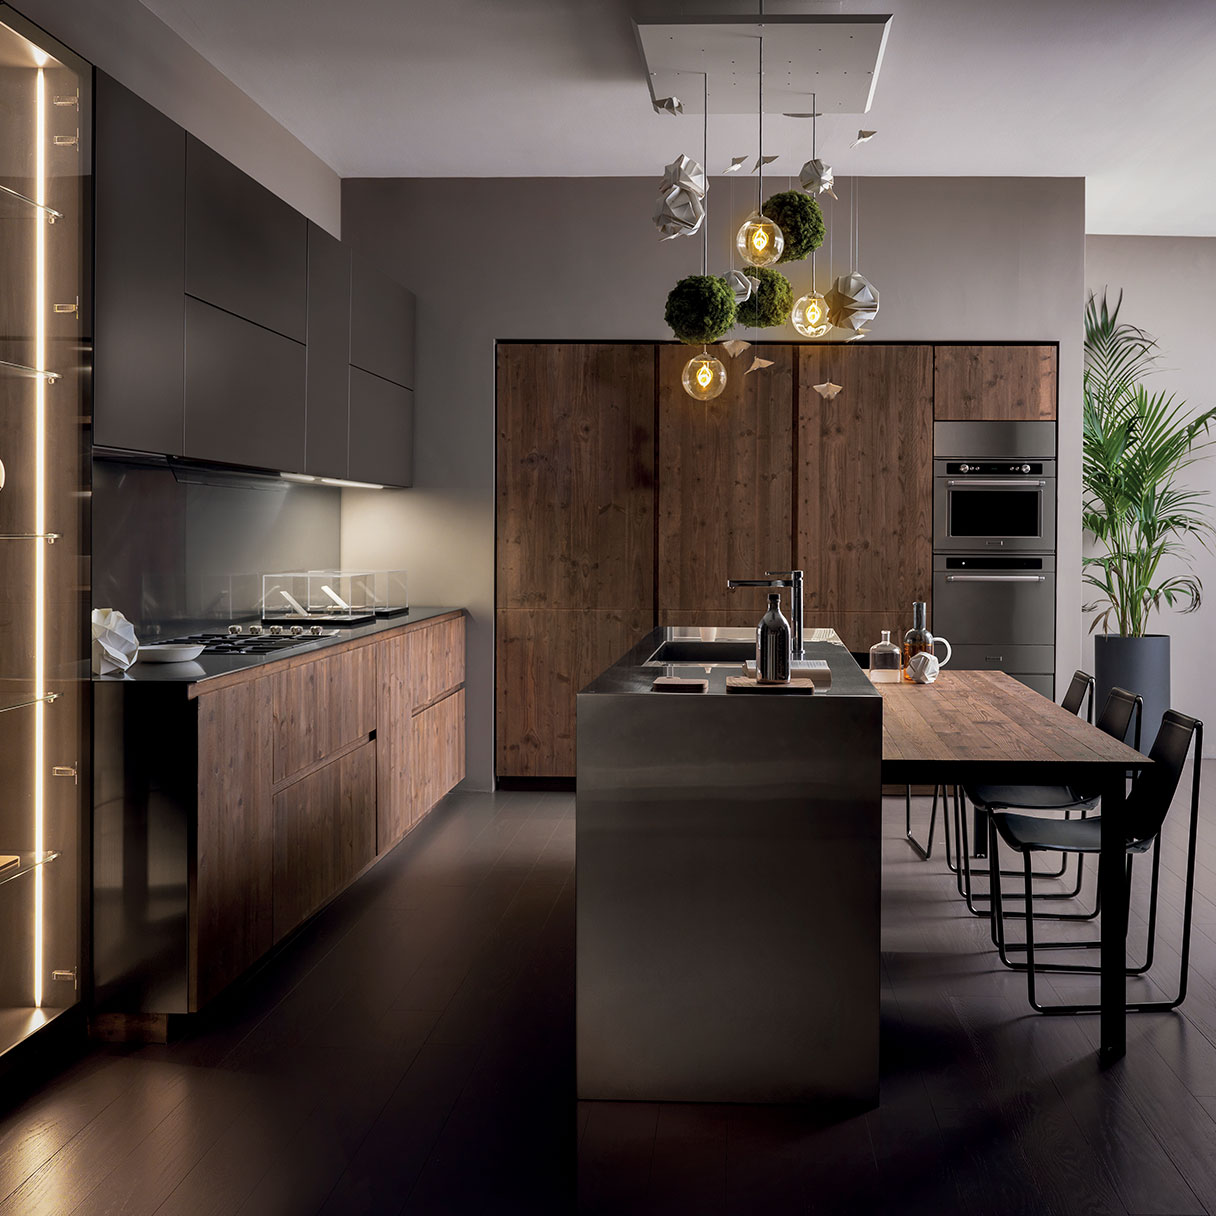 Aster Cucine Spa | Creating Memories And Sharing Family Moments In ...